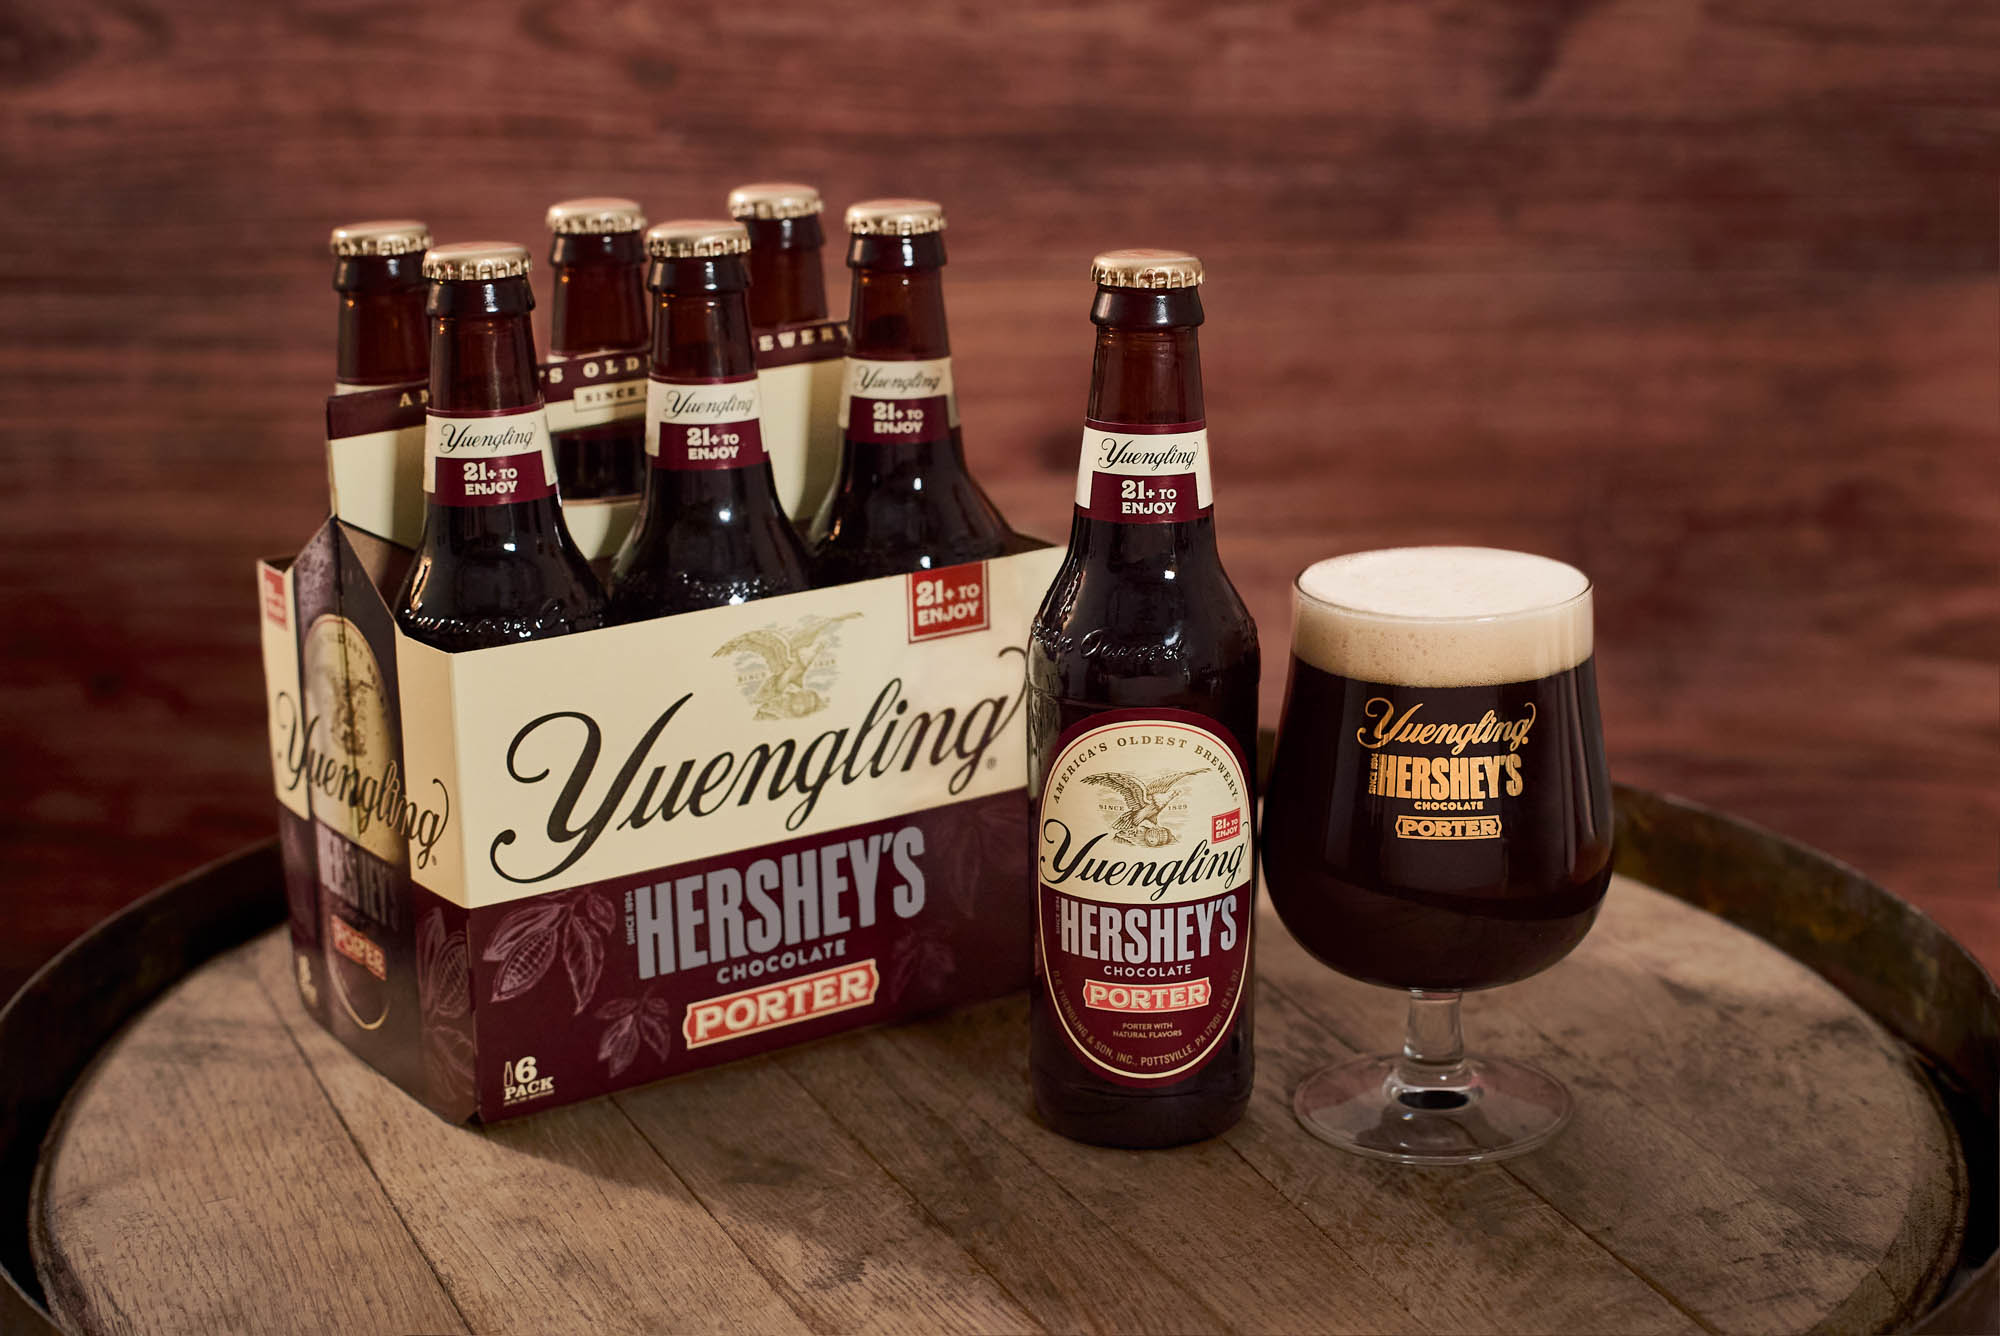 Yuengling Hershey's Chocolate Porter Bottle and Glass